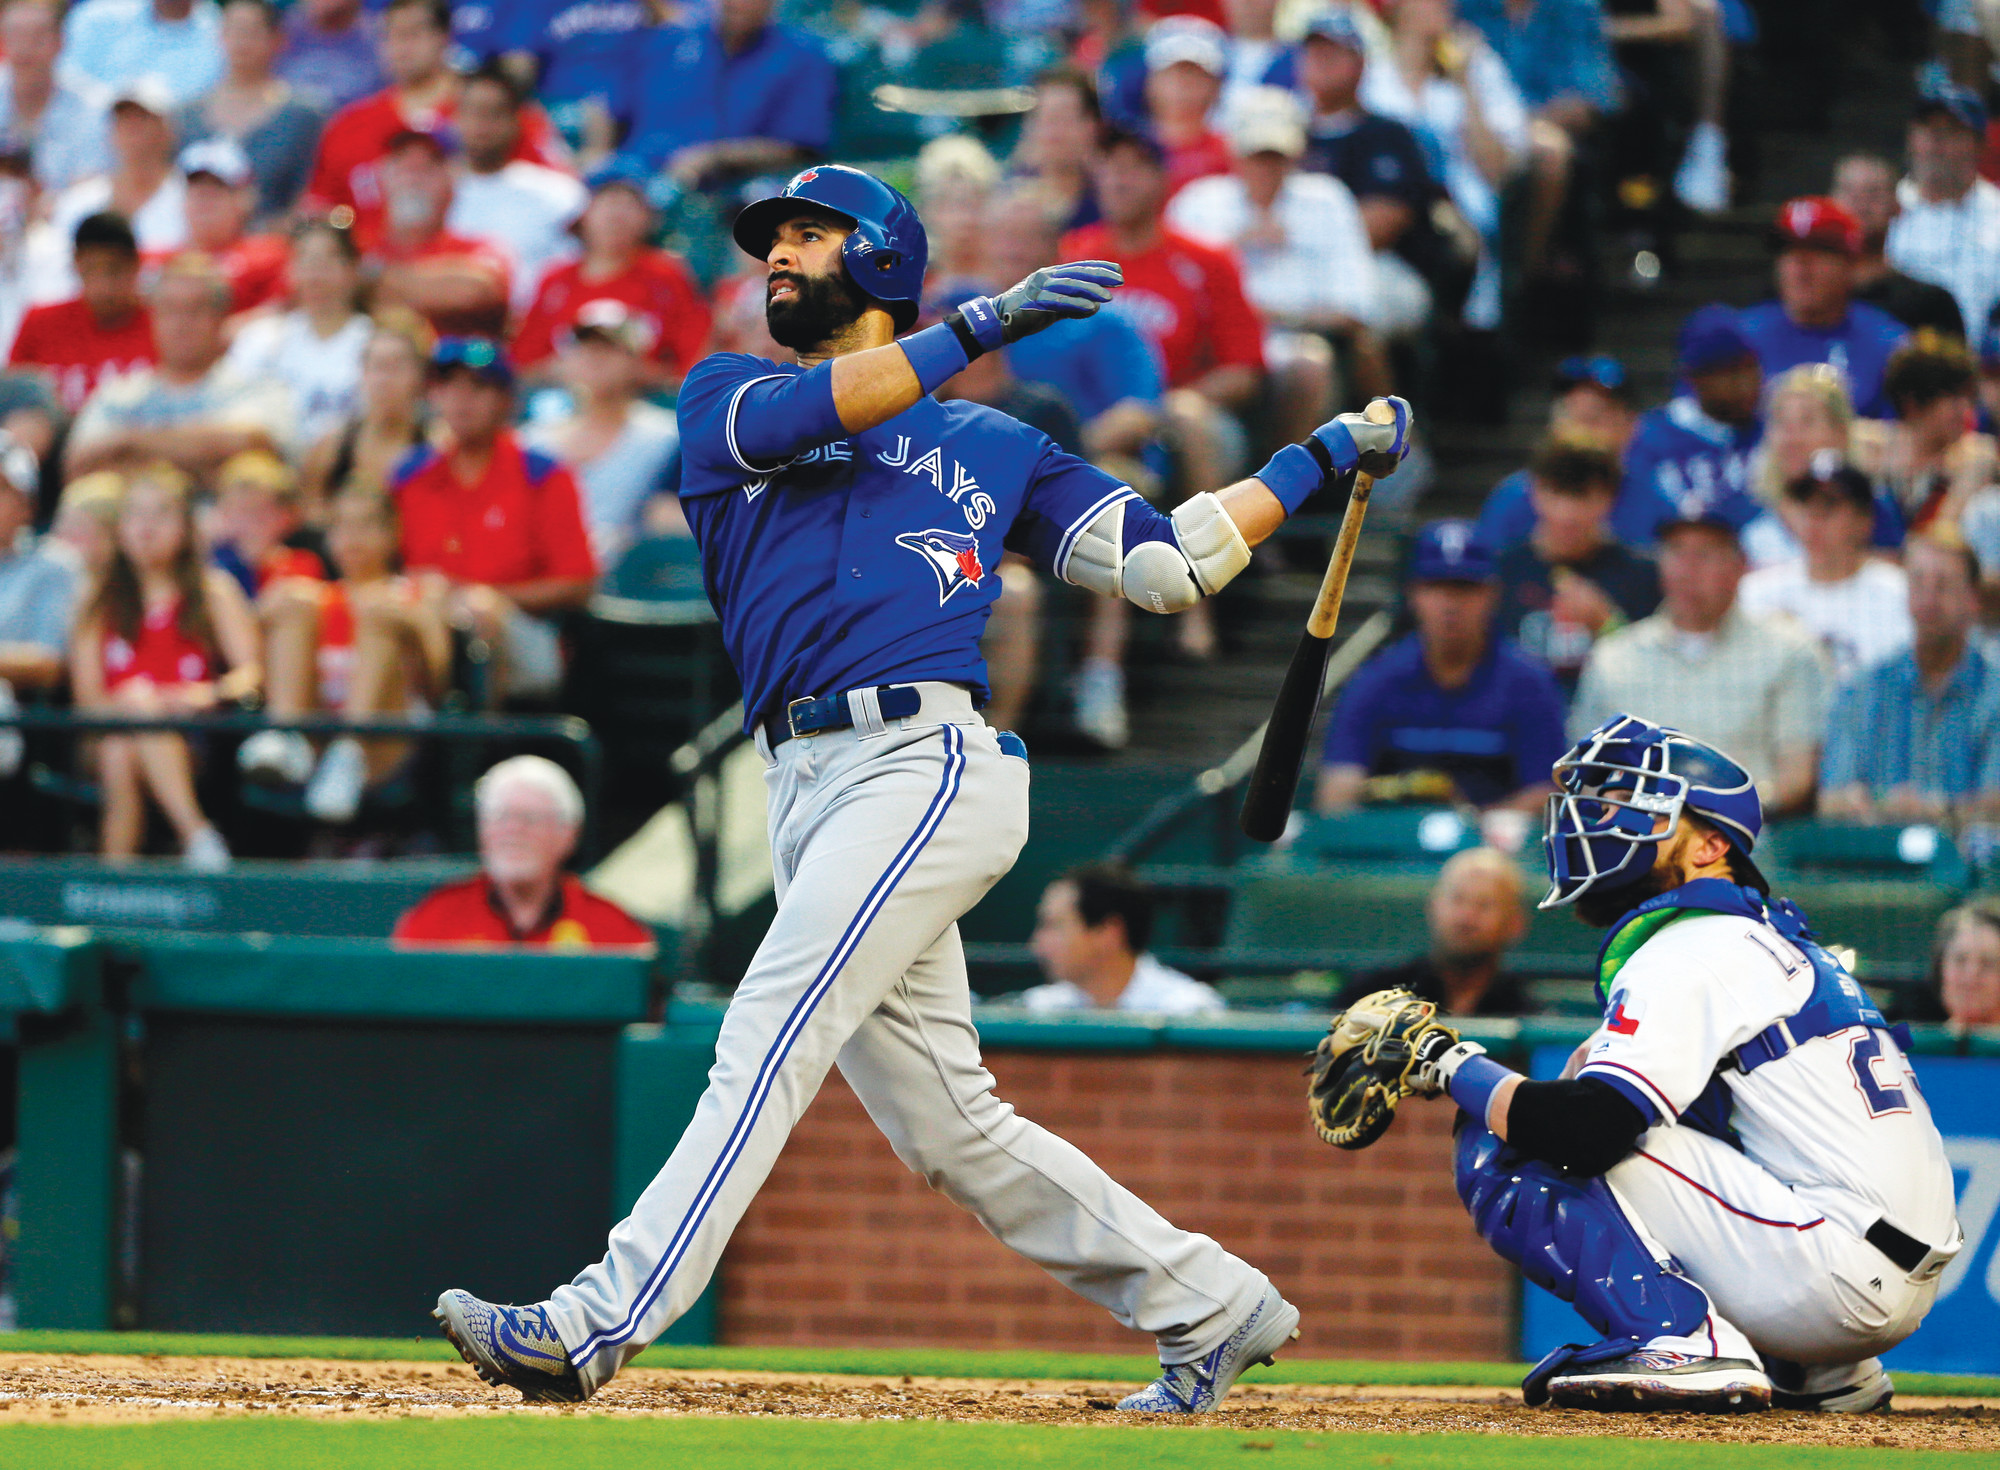 Braves announce they've signed Jose Bautista to minor-league deal